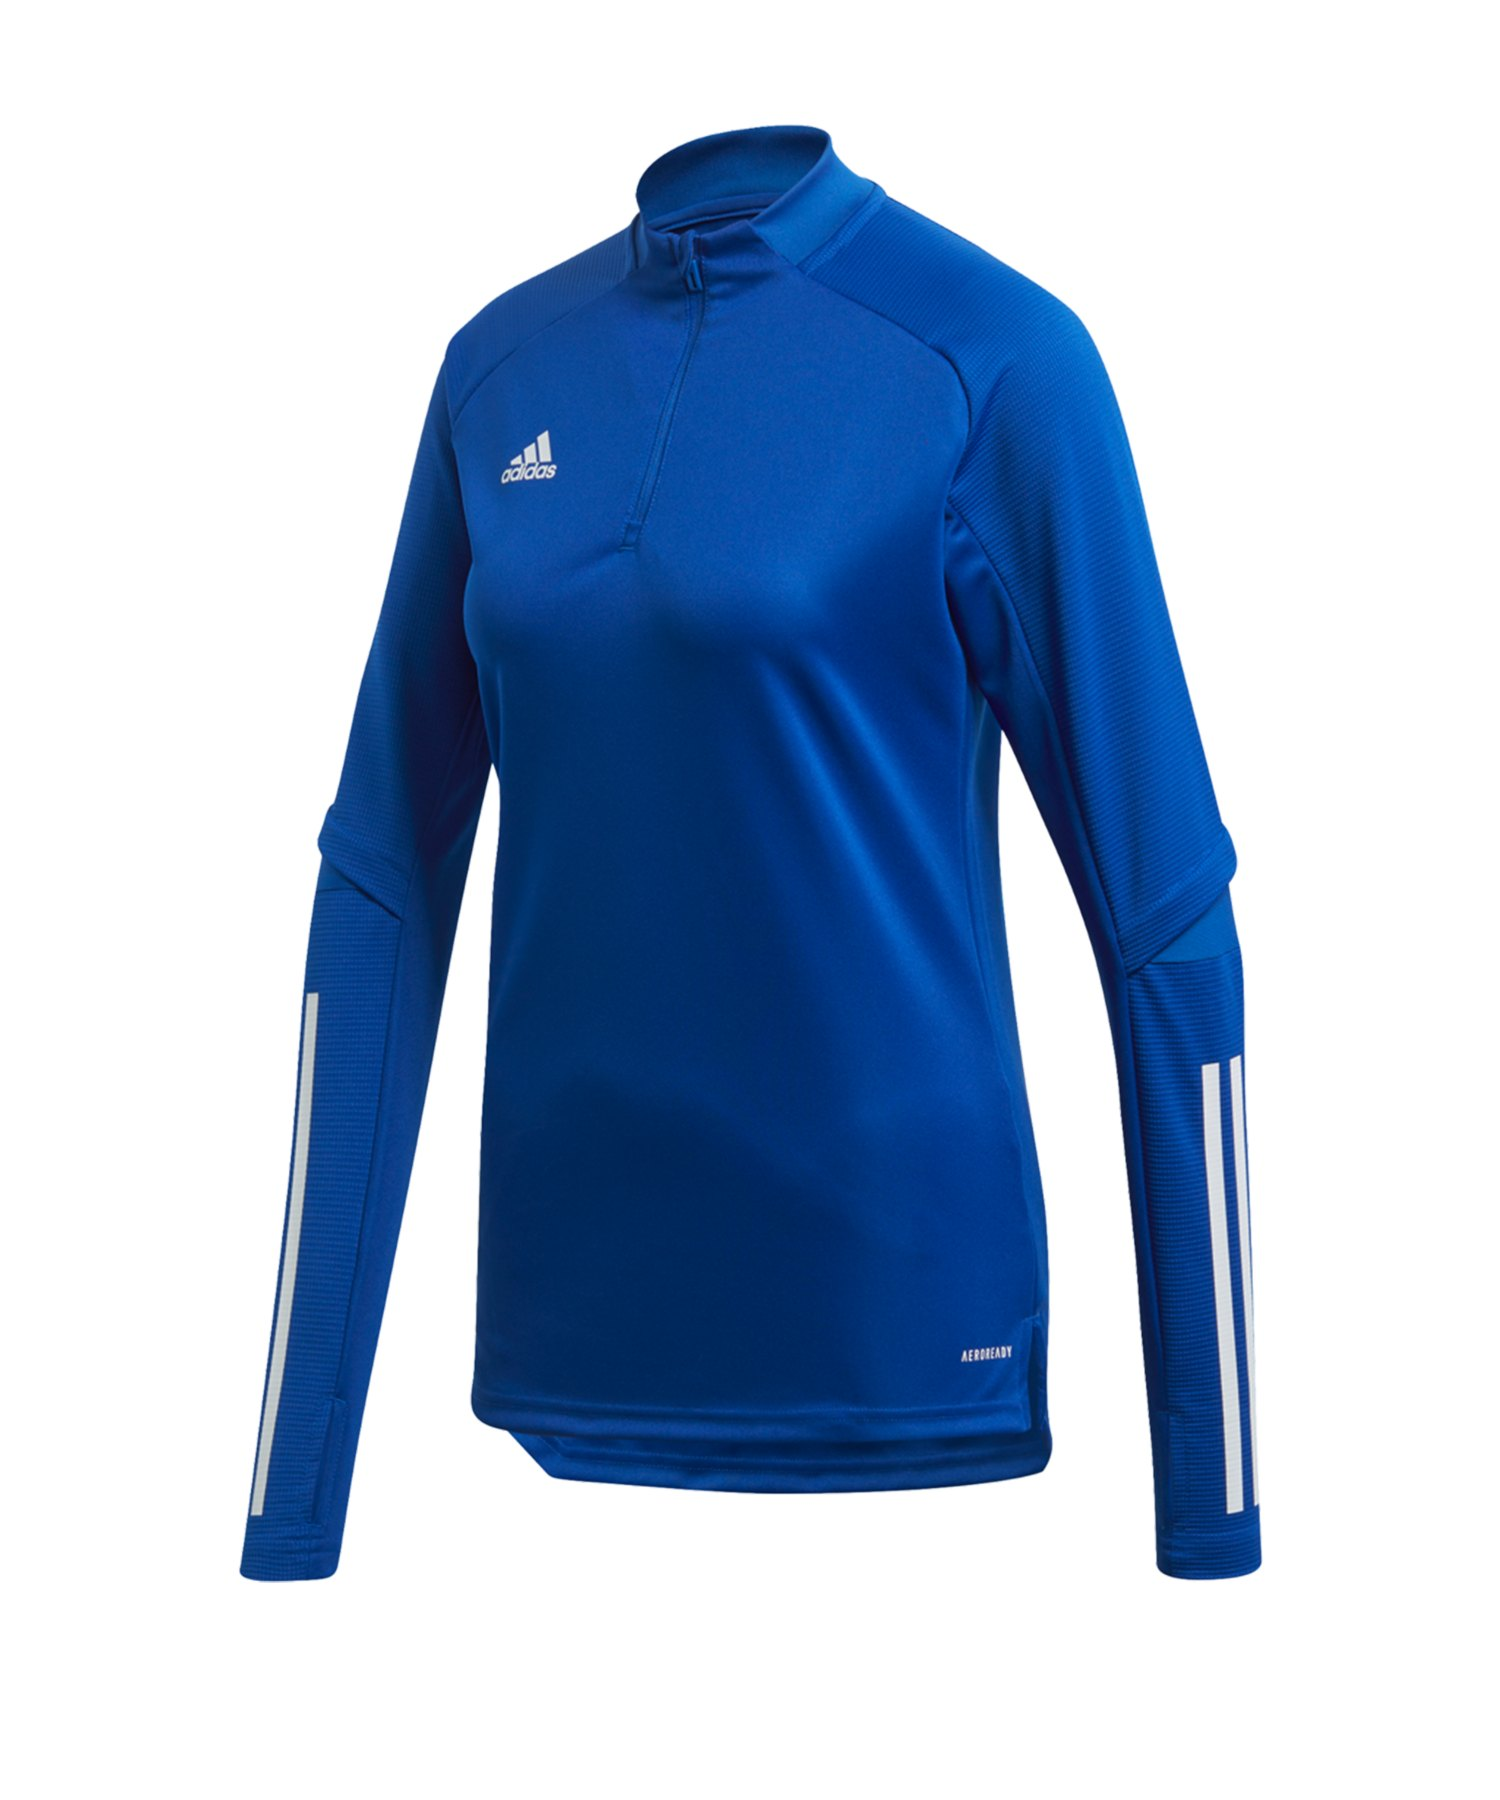 adidas Condivo 20 Trainingstop LA Damen Blau - blau